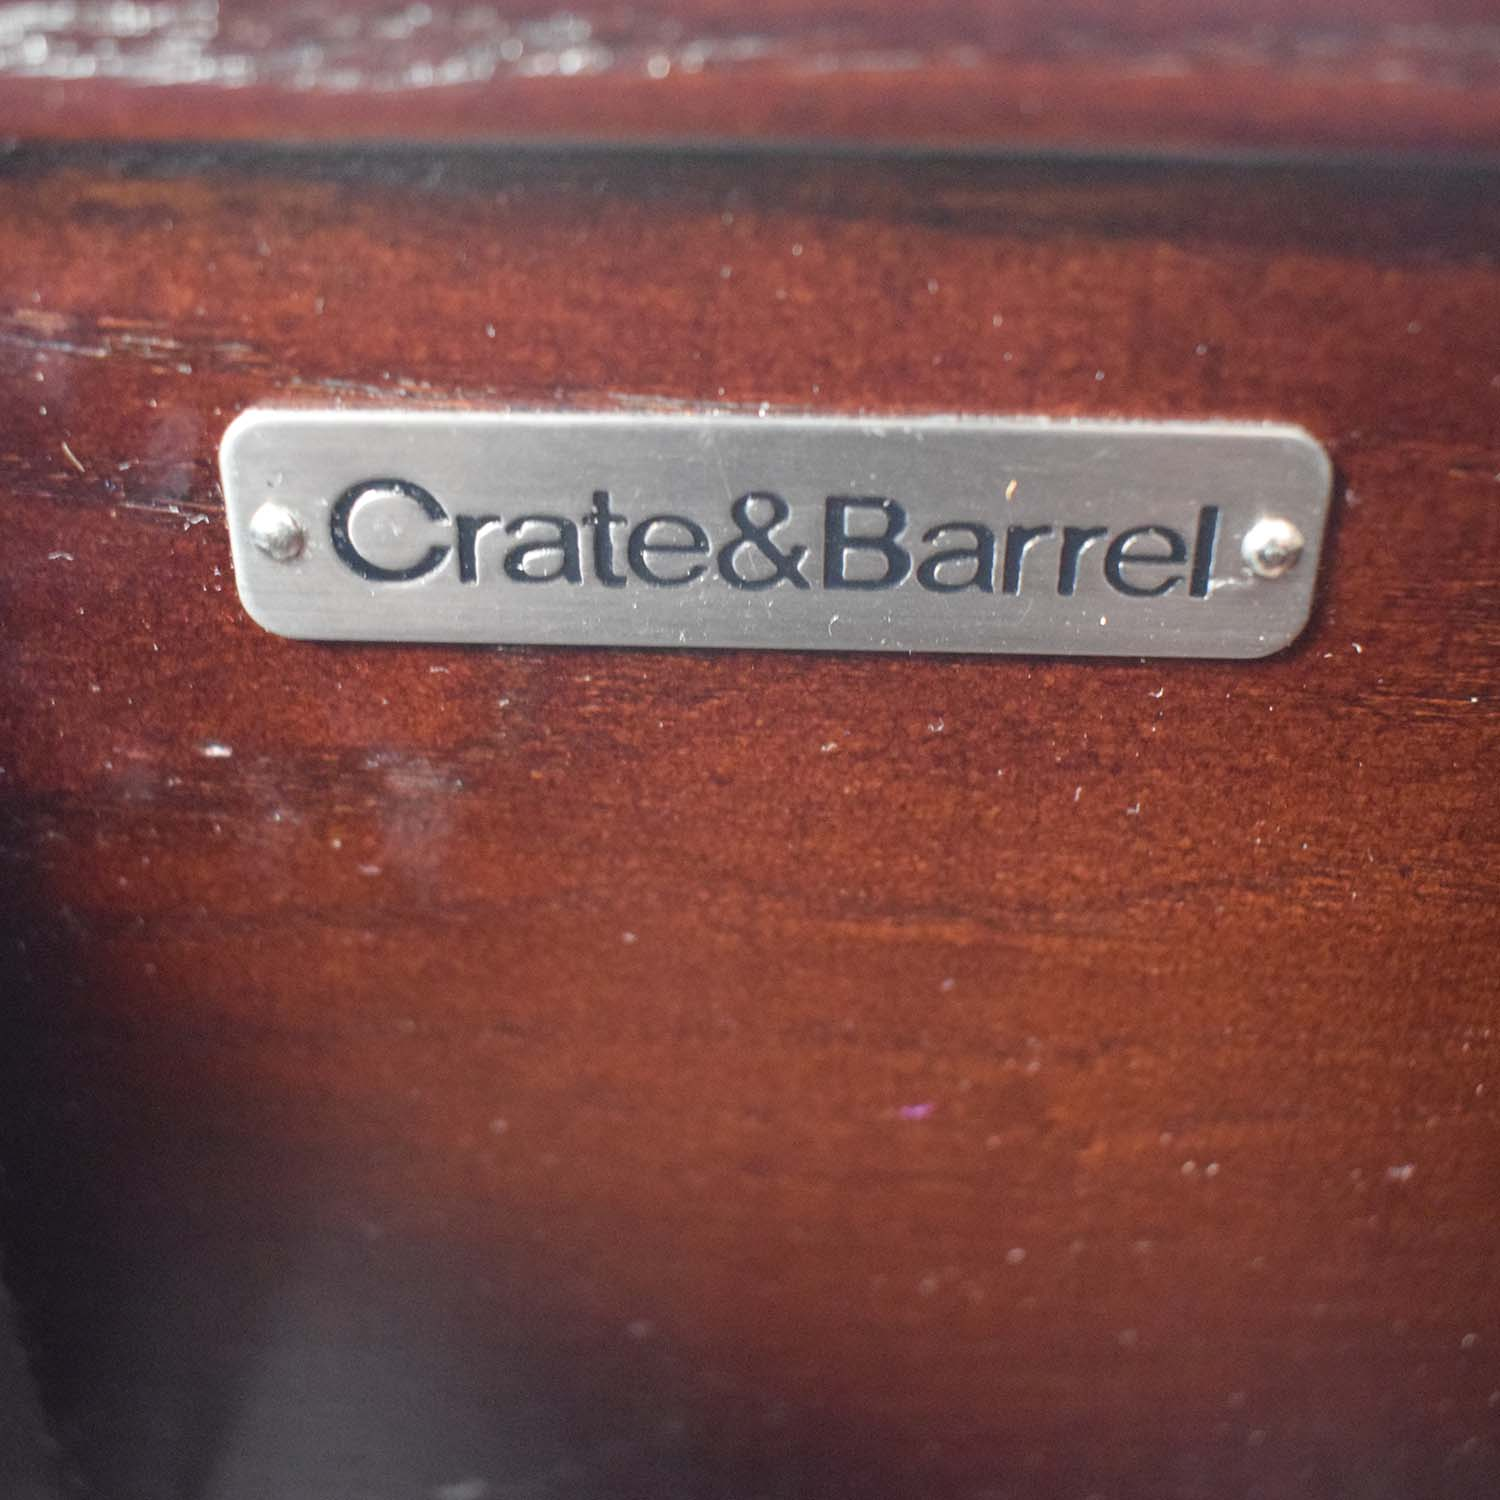 Crate & Barrel Crate & Barrel Addison Storage Bench coupon